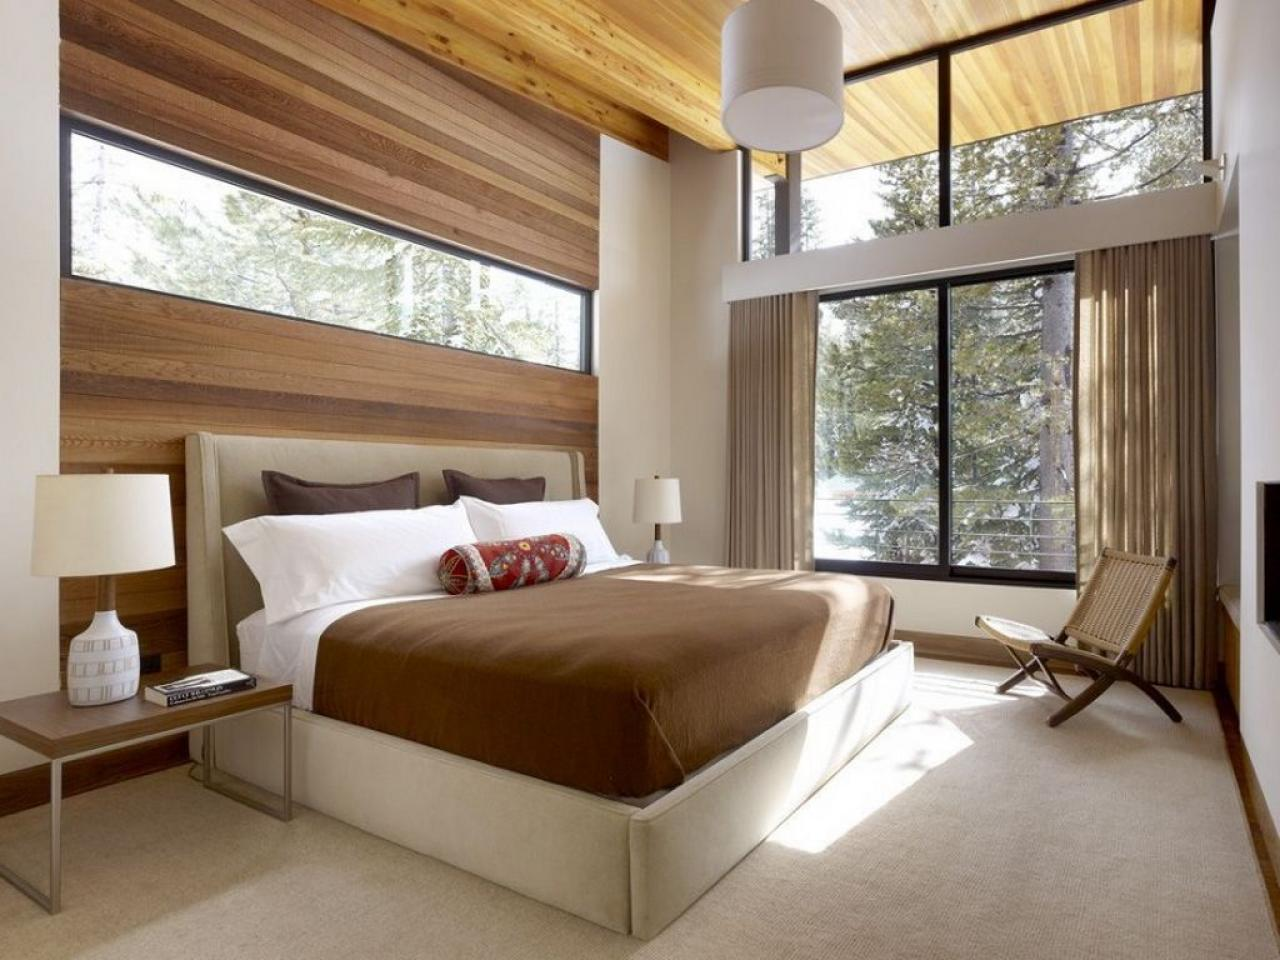 Minimalist Design for Bedroom on Dream House Design with Wooden Roofing